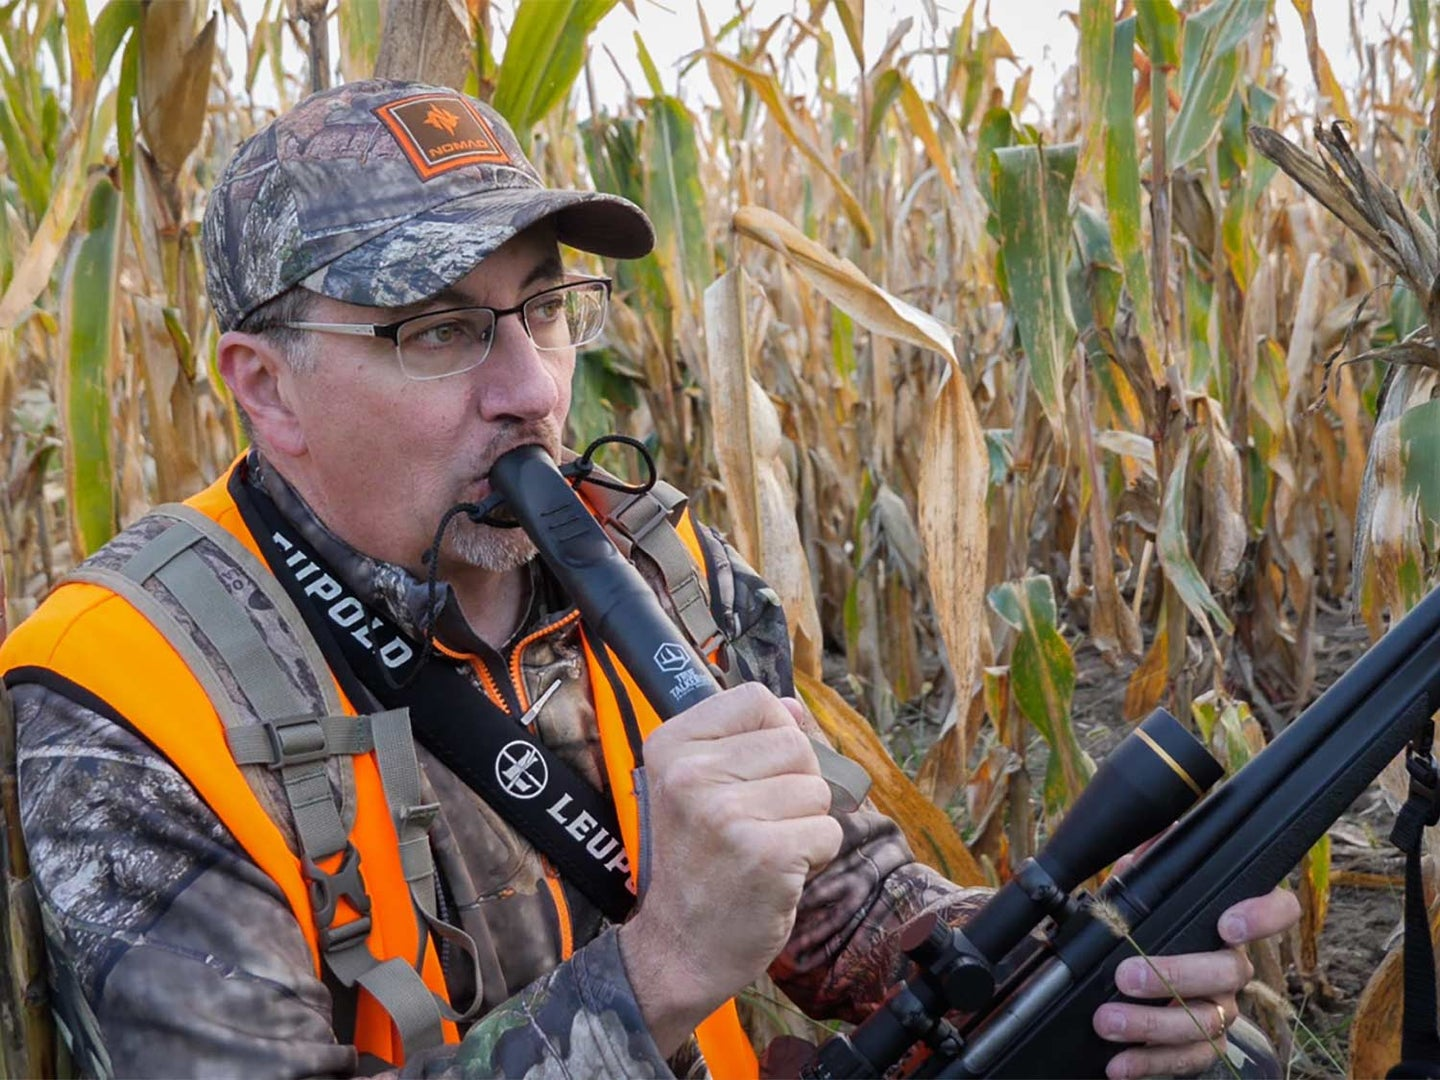 A hunter in camo and orange vest holds a rifle in one hand while blowing into a deer hunting grunt call held in the other.